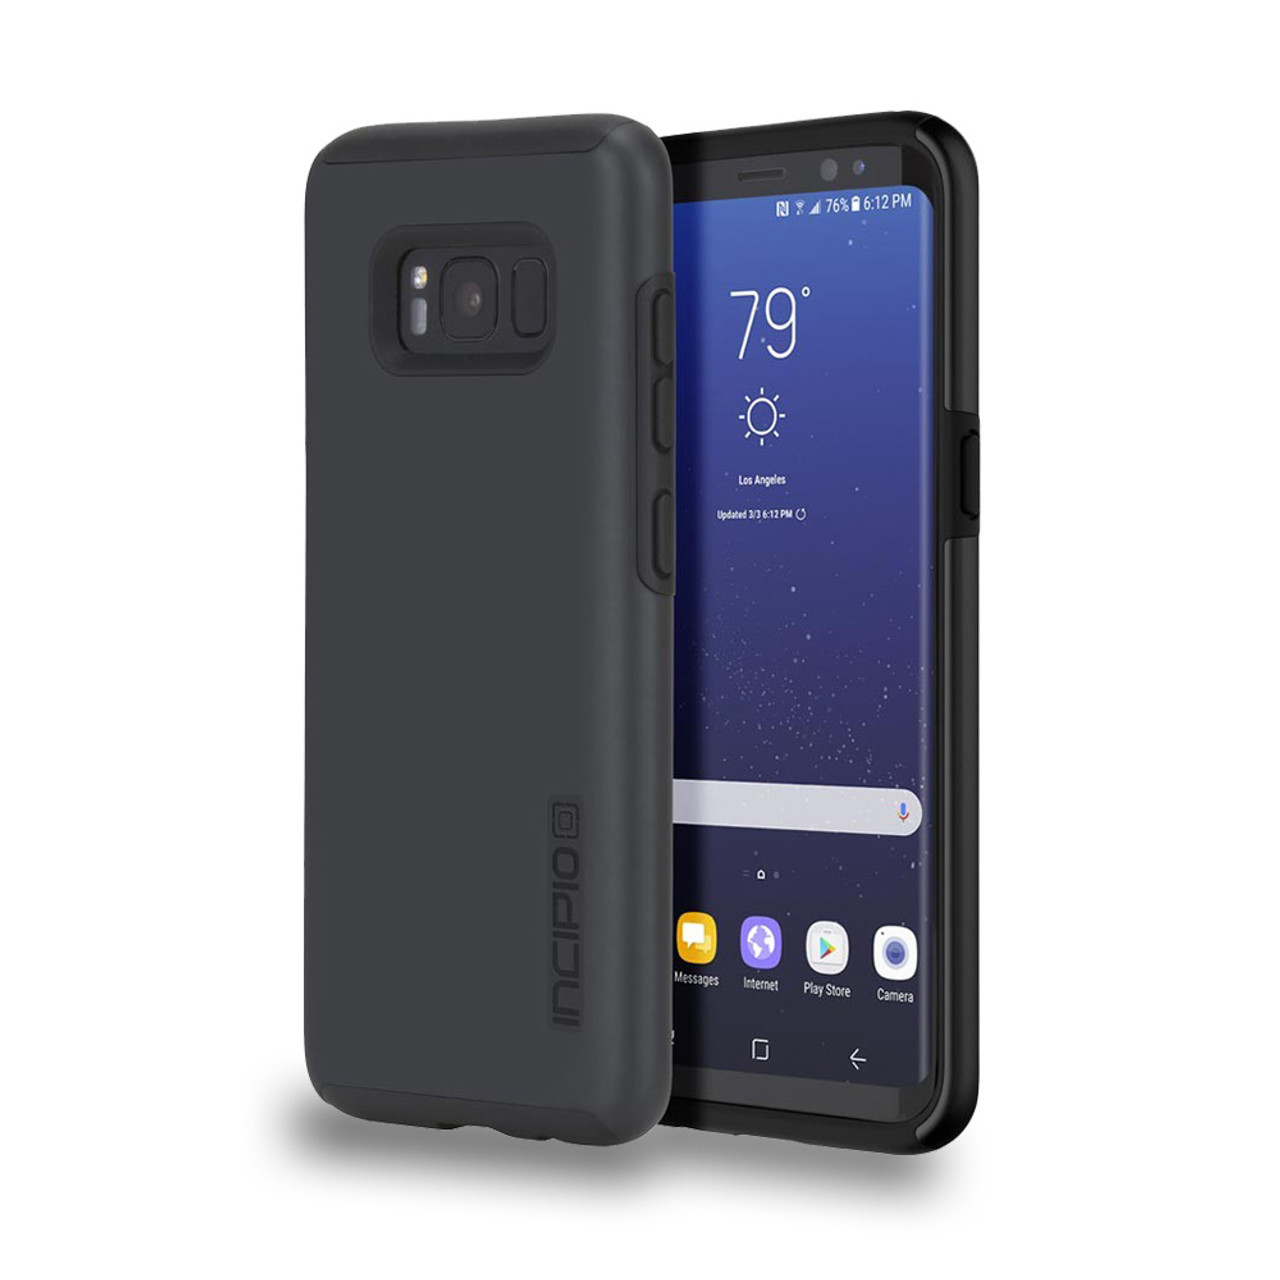 newest be3b6 9a779 INCIPIO - DualPro Case for Samsung Galaxy S8 Iradescent Black/Black